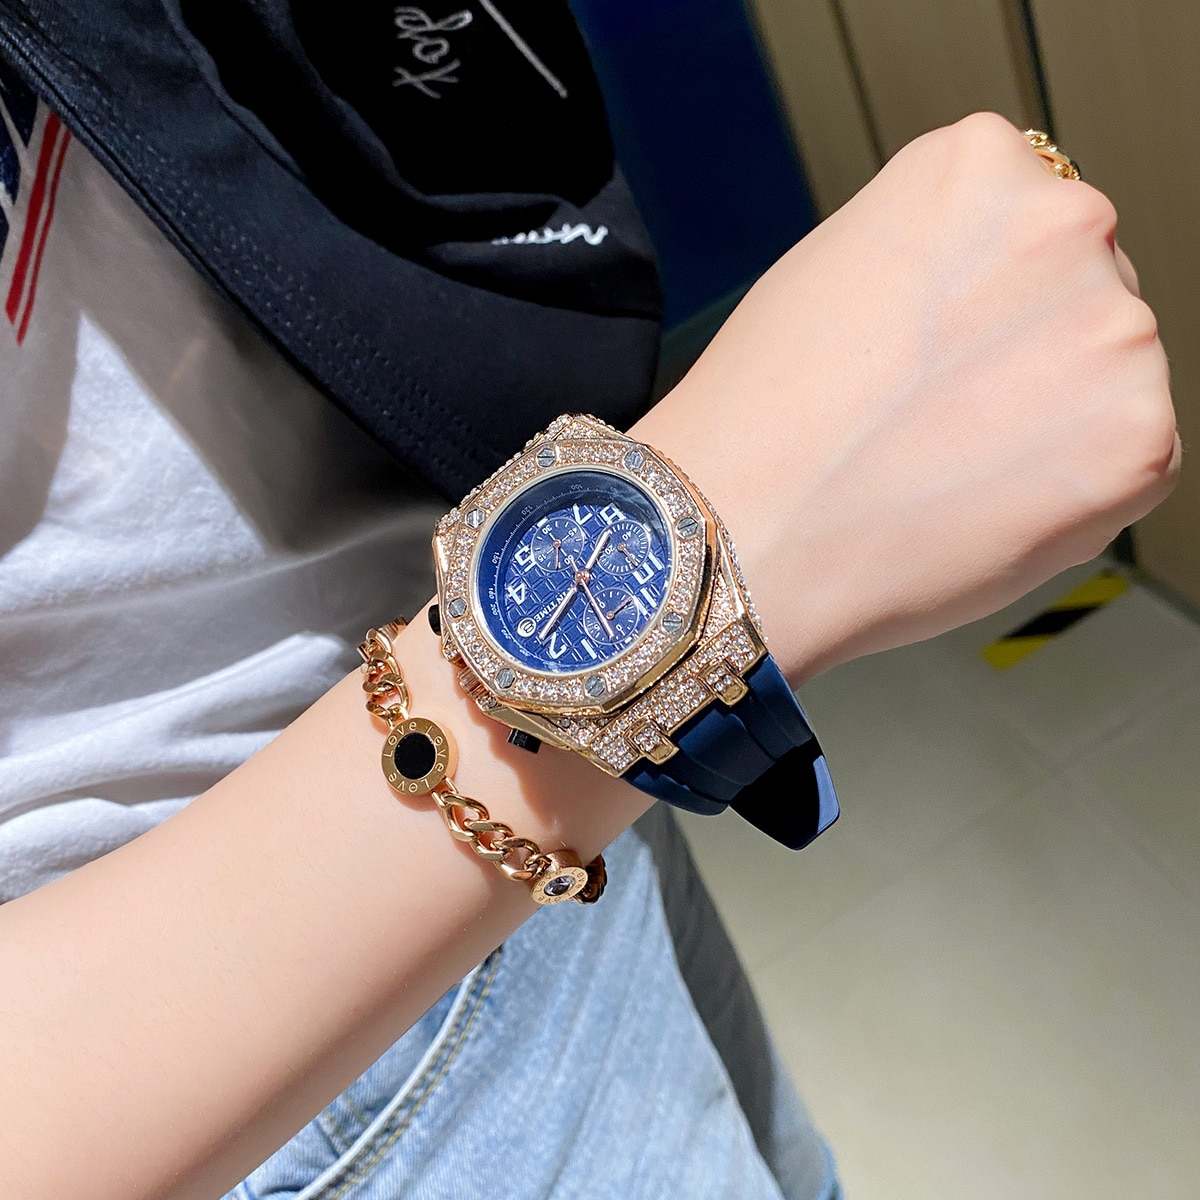 Luxury brand sports watch ladies chronograph diamond military gold ice out men's watch waterproof relogio masculino montre homme enlarge